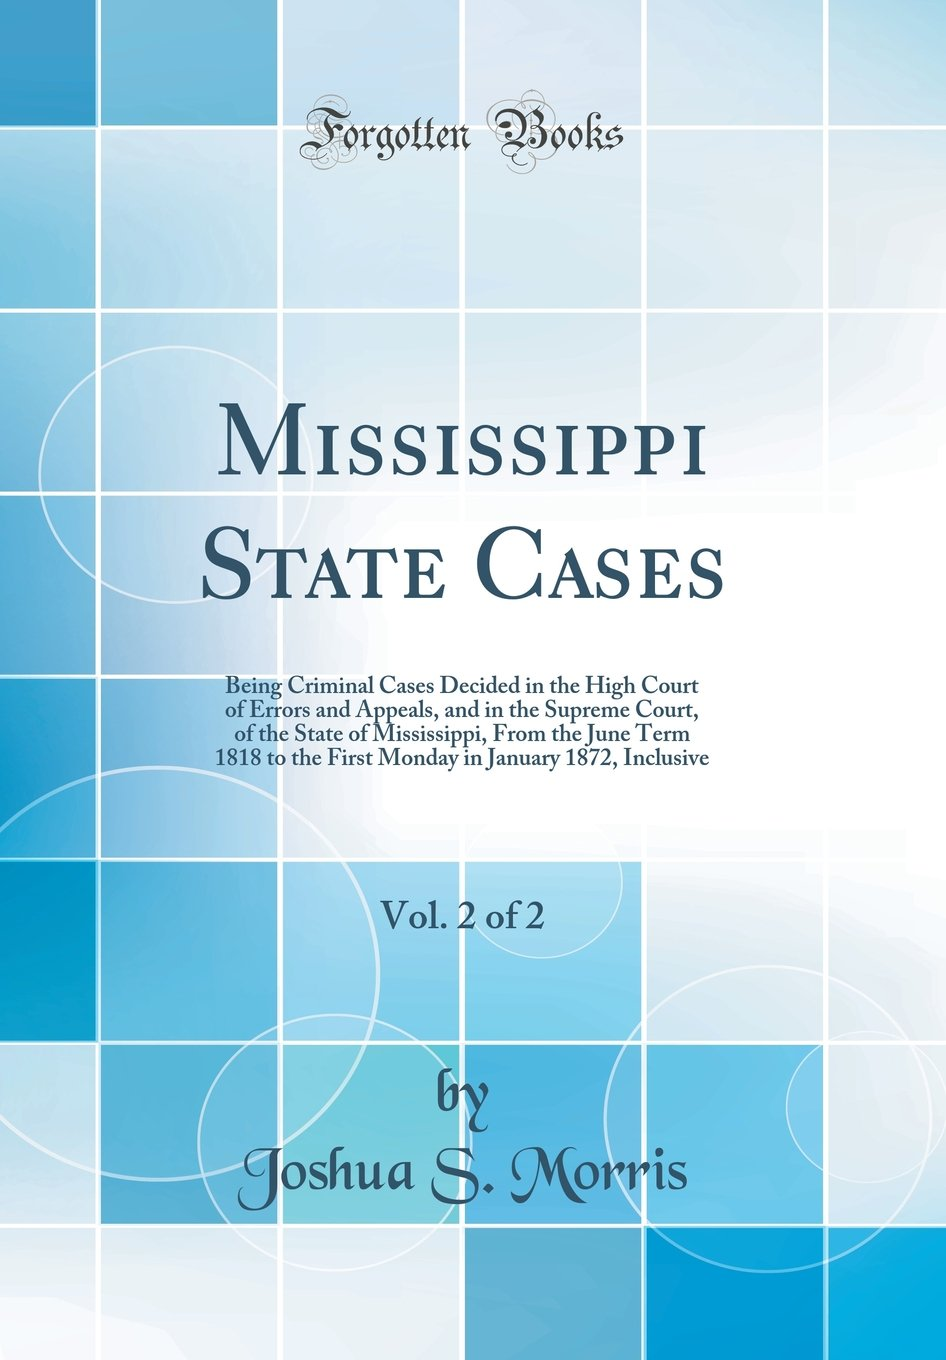 Download Mississippi State Cases, Vol. 2 of 2: Being Criminal Cases Decided in the High Court of Errors and Appeals, and in the Supreme Court, of the State of ... in January 1872, Inclusive (Classic Reprint) PDF